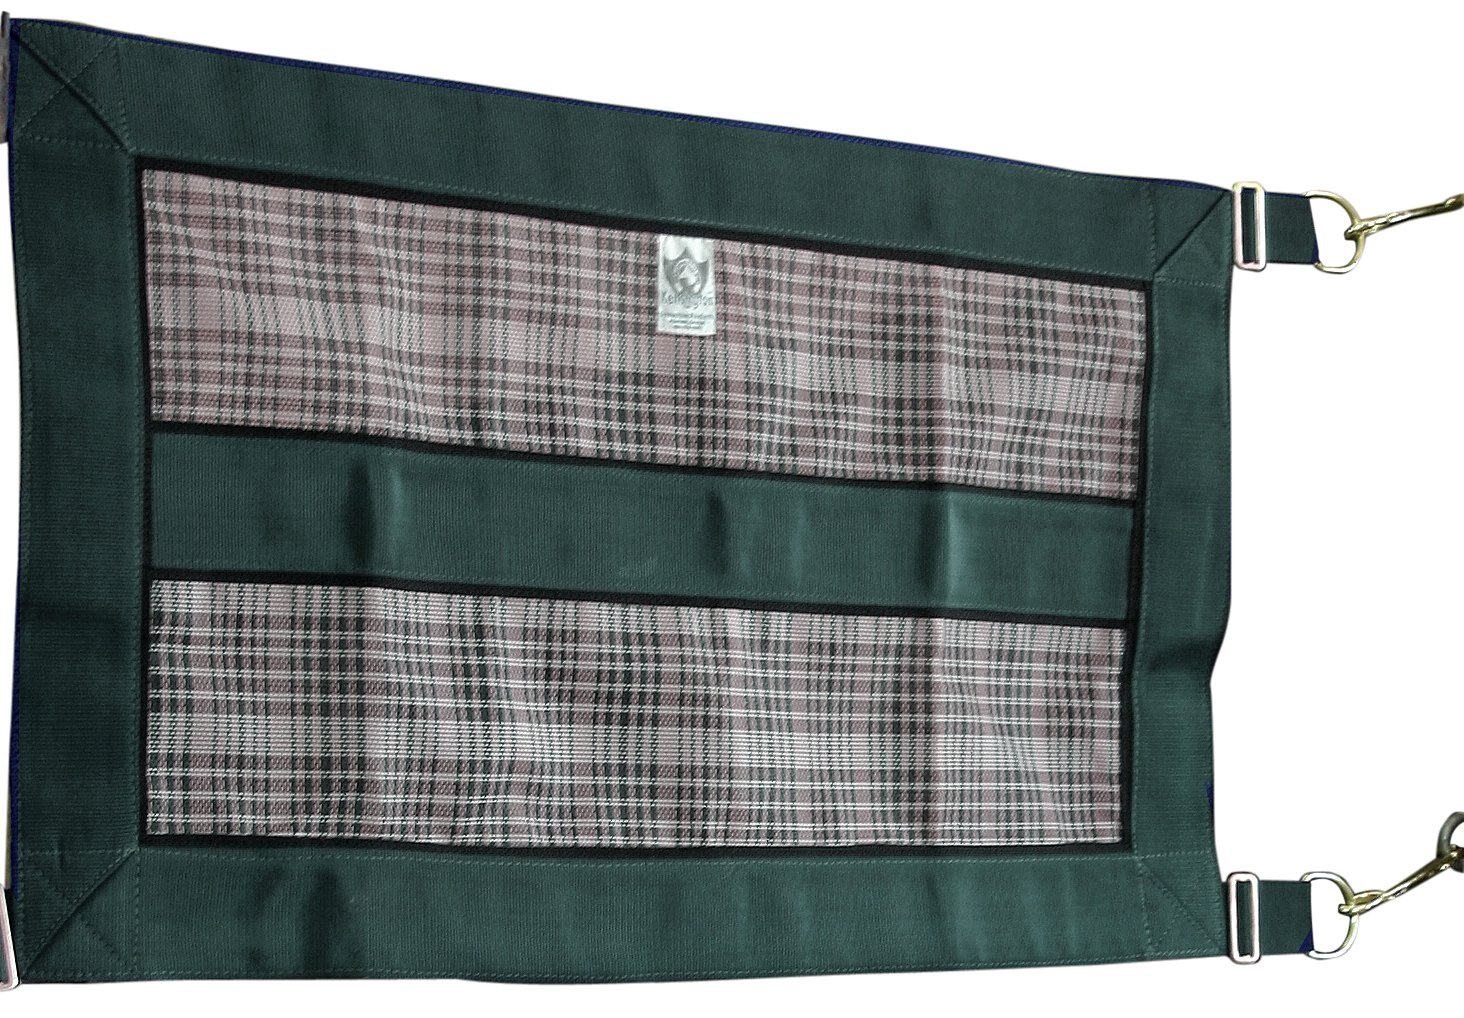 Kensington Stall Guard for Horses - Designed to Keep Horse Securely in Stall in Style -  Adjustable Straps and Hardware Included